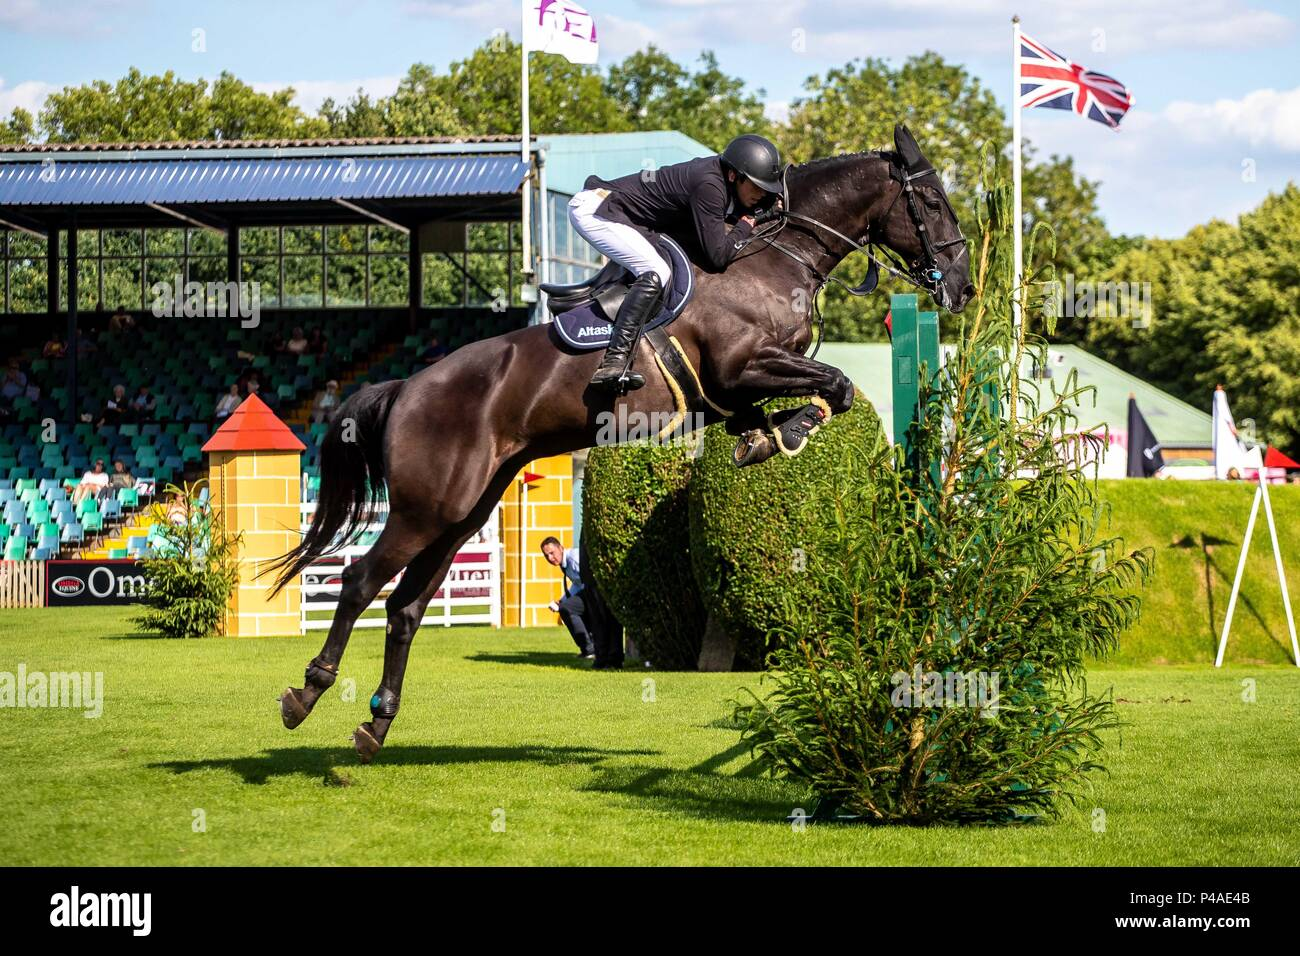 Michael Pender riding Casanova Van Overis Z. IRL. The Bunn Lesiure Tankard. CSI4*. The Al Shira'aa Hickstead Derby Meeting. Showjumping. The All England Jumping Course. Hickstead. West Sussex. UK. Day 2. 21/06/2018. - Stock Image